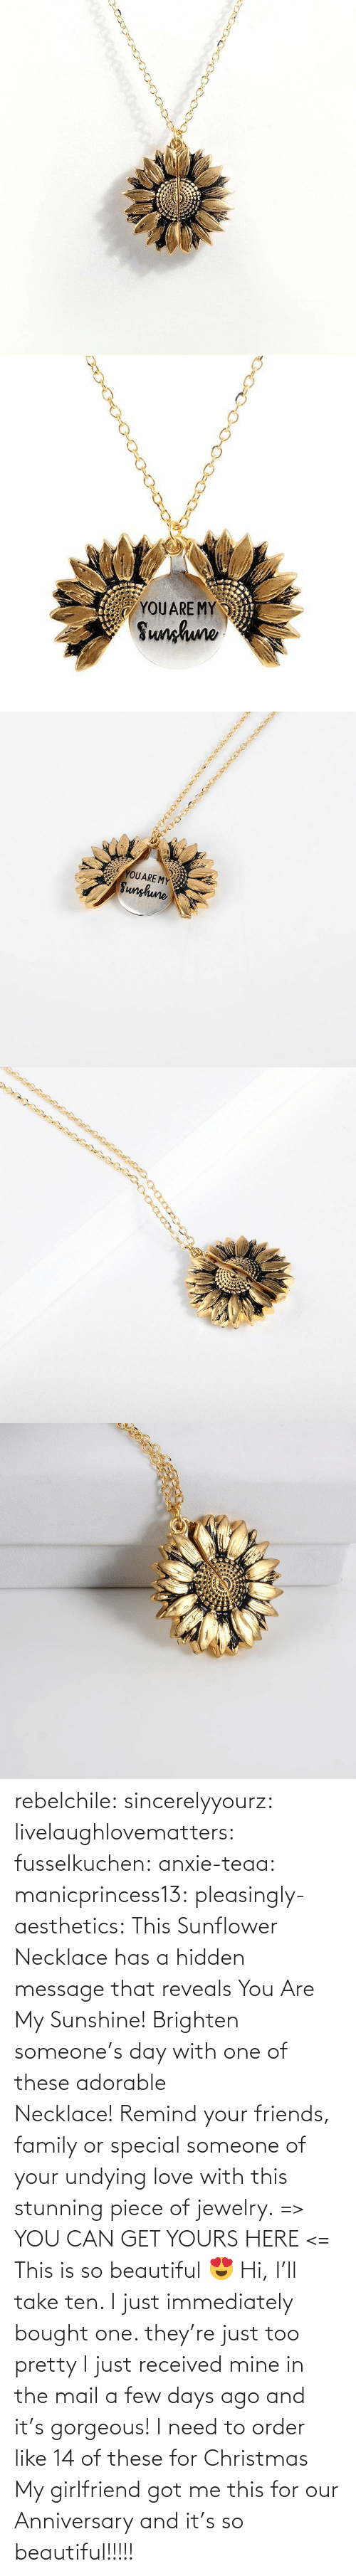 for christmas: rebelchile:  sincerelyyourz:  livelaughlovematters:  fusselkuchen:  anxie-teaa:   manicprincess13:   pleasingly-aesthetics:  This Sunflower Necklace has a hidden message that reveals You Are My Sunshine! Brighten someone's day with one of these adorable Necklace! Remind your friends, family or special someone of your undying love with this stunning piece of jewelry. => YOU CAN GET YOURS HERE <=   This is so beautiful 😍    Hi, I'll take ten.    I just immediately bought one. they're just too pretty   I just received mine in the mail a few days ago and it's gorgeous!   I need to order like 14 of these for Christmas    My girlfriend got me this for our Anniversary and it's so beautiful!!!!!